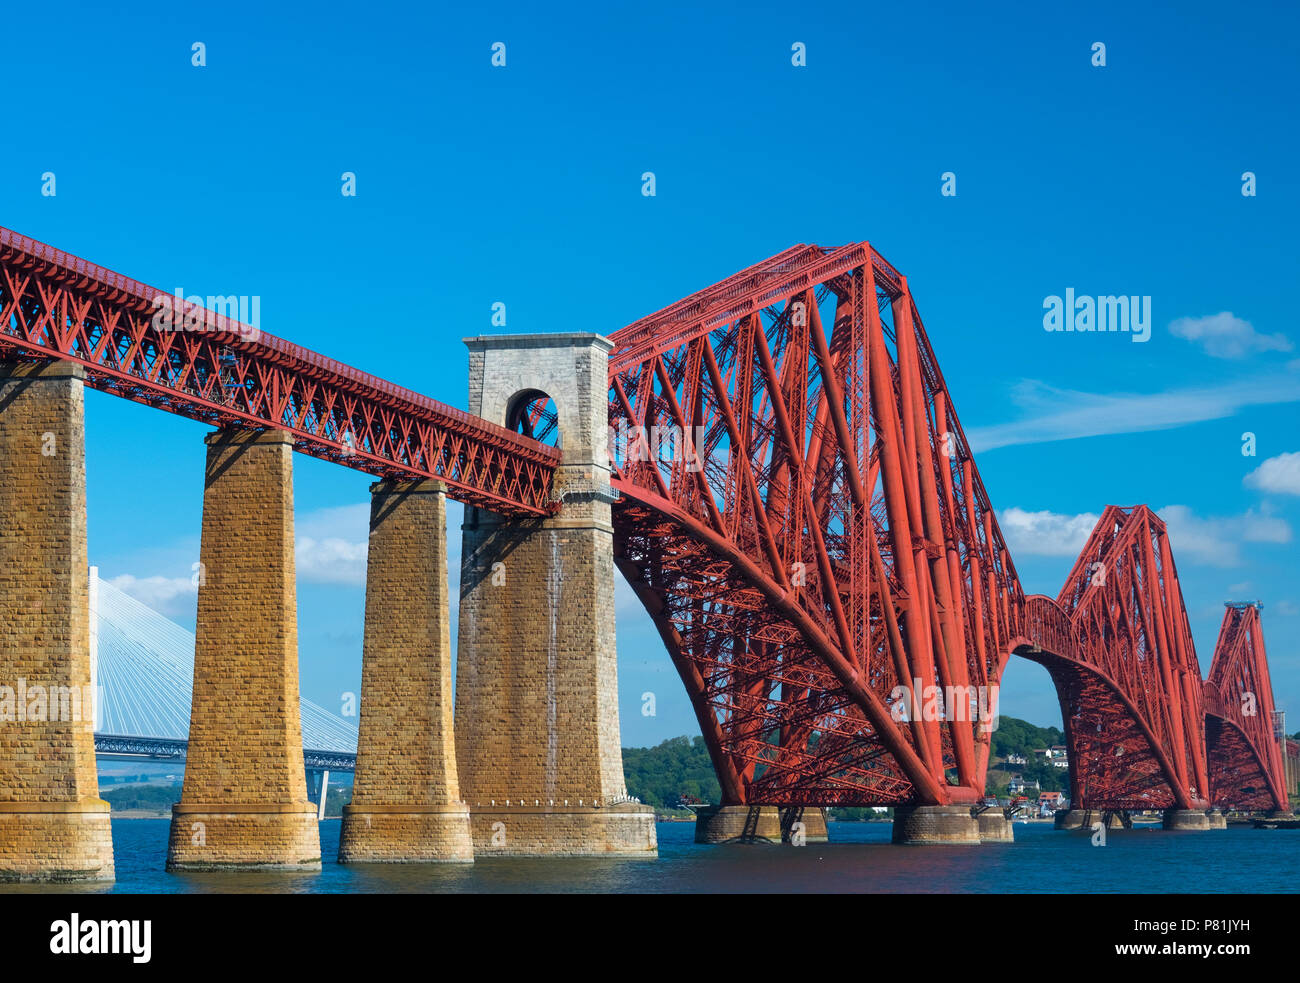 The iconic Forth Bridge spans the Firth of Forth, connecting Queensferry and North Queensferry, summer 2018. Stock Photo